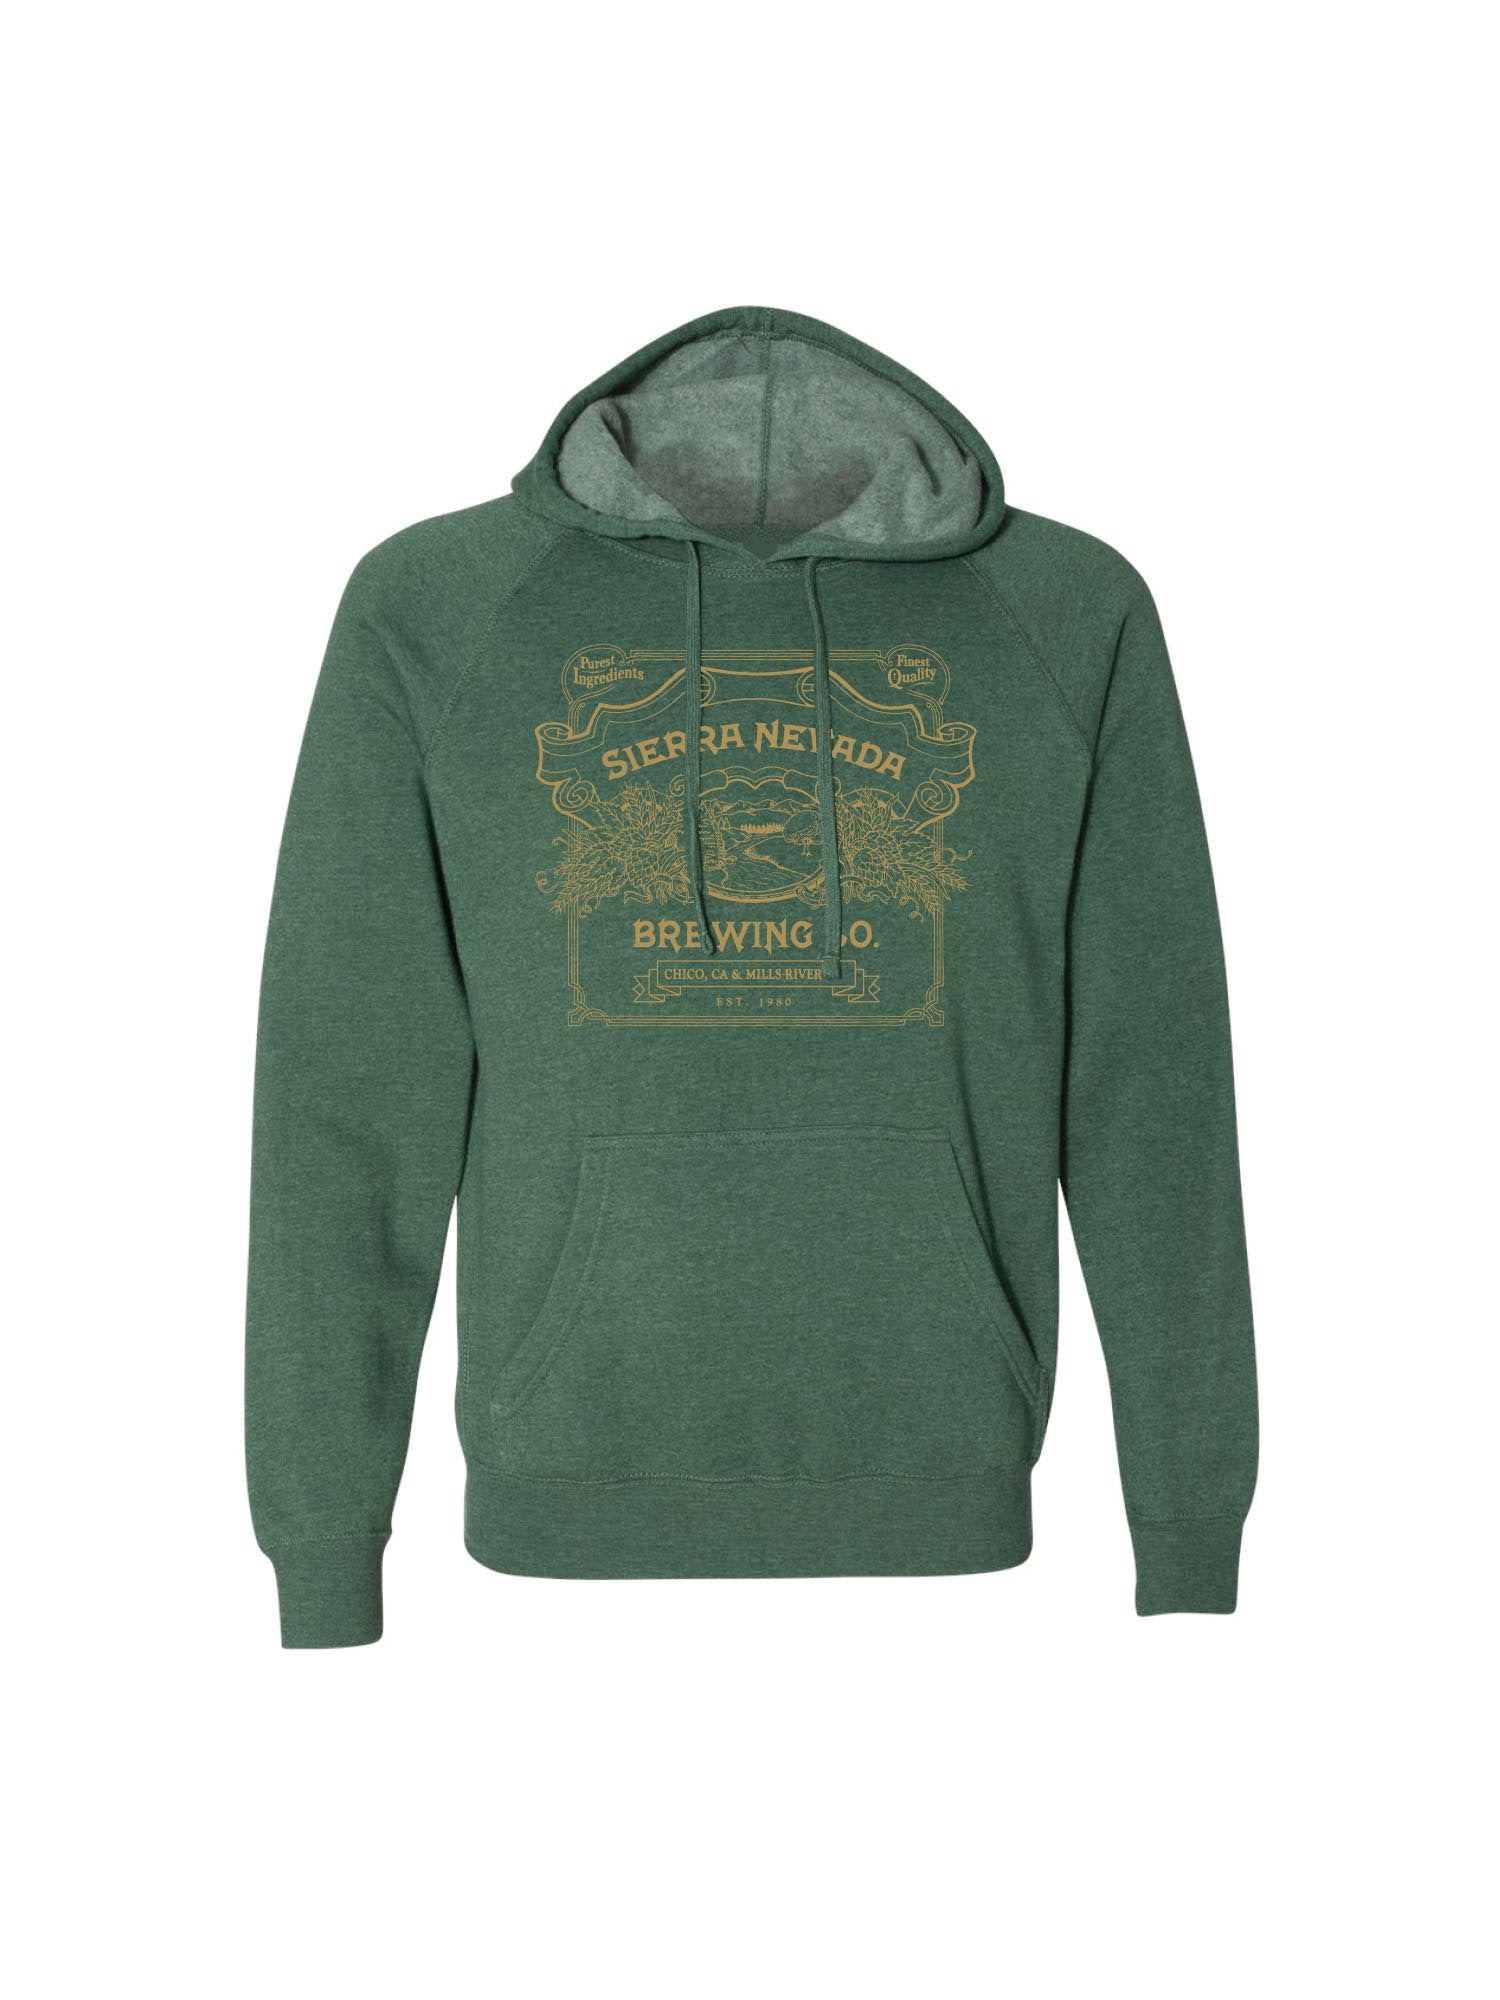 HANDCRAFTED PULL OVER- LIME GREEN - Anderson Bros Design and Supply